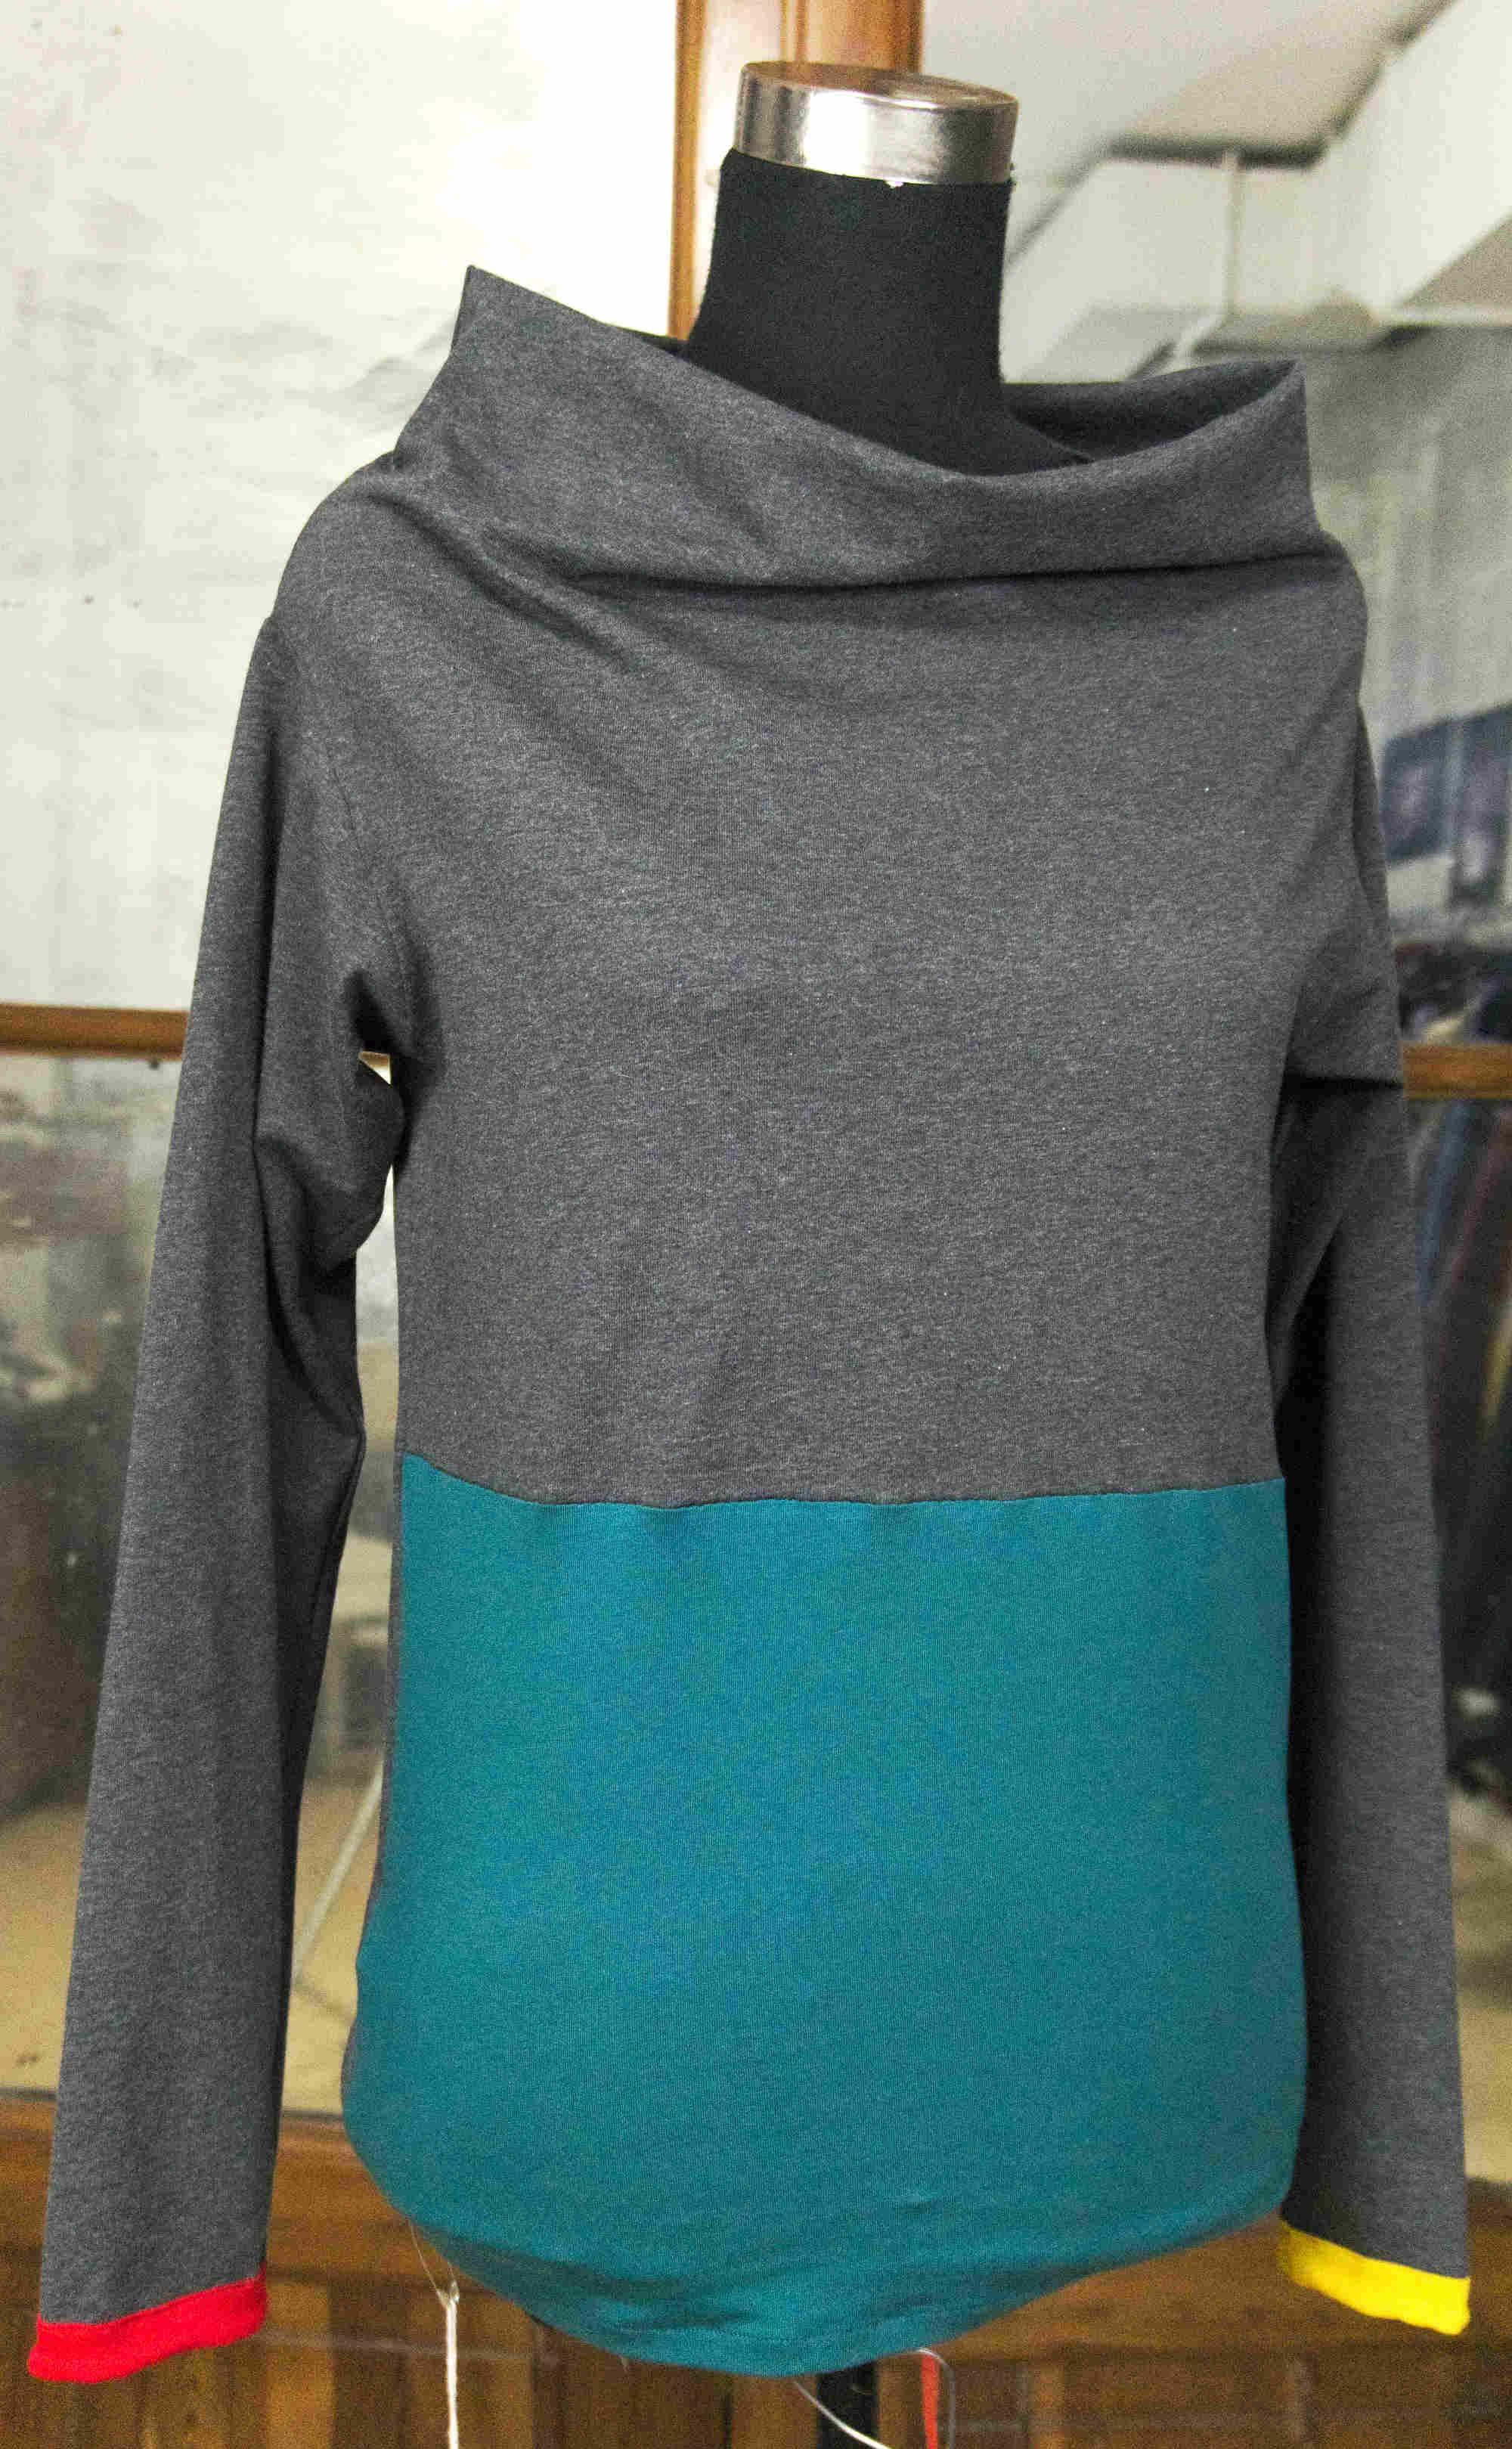 t-shirt with vulcan neck and inserts